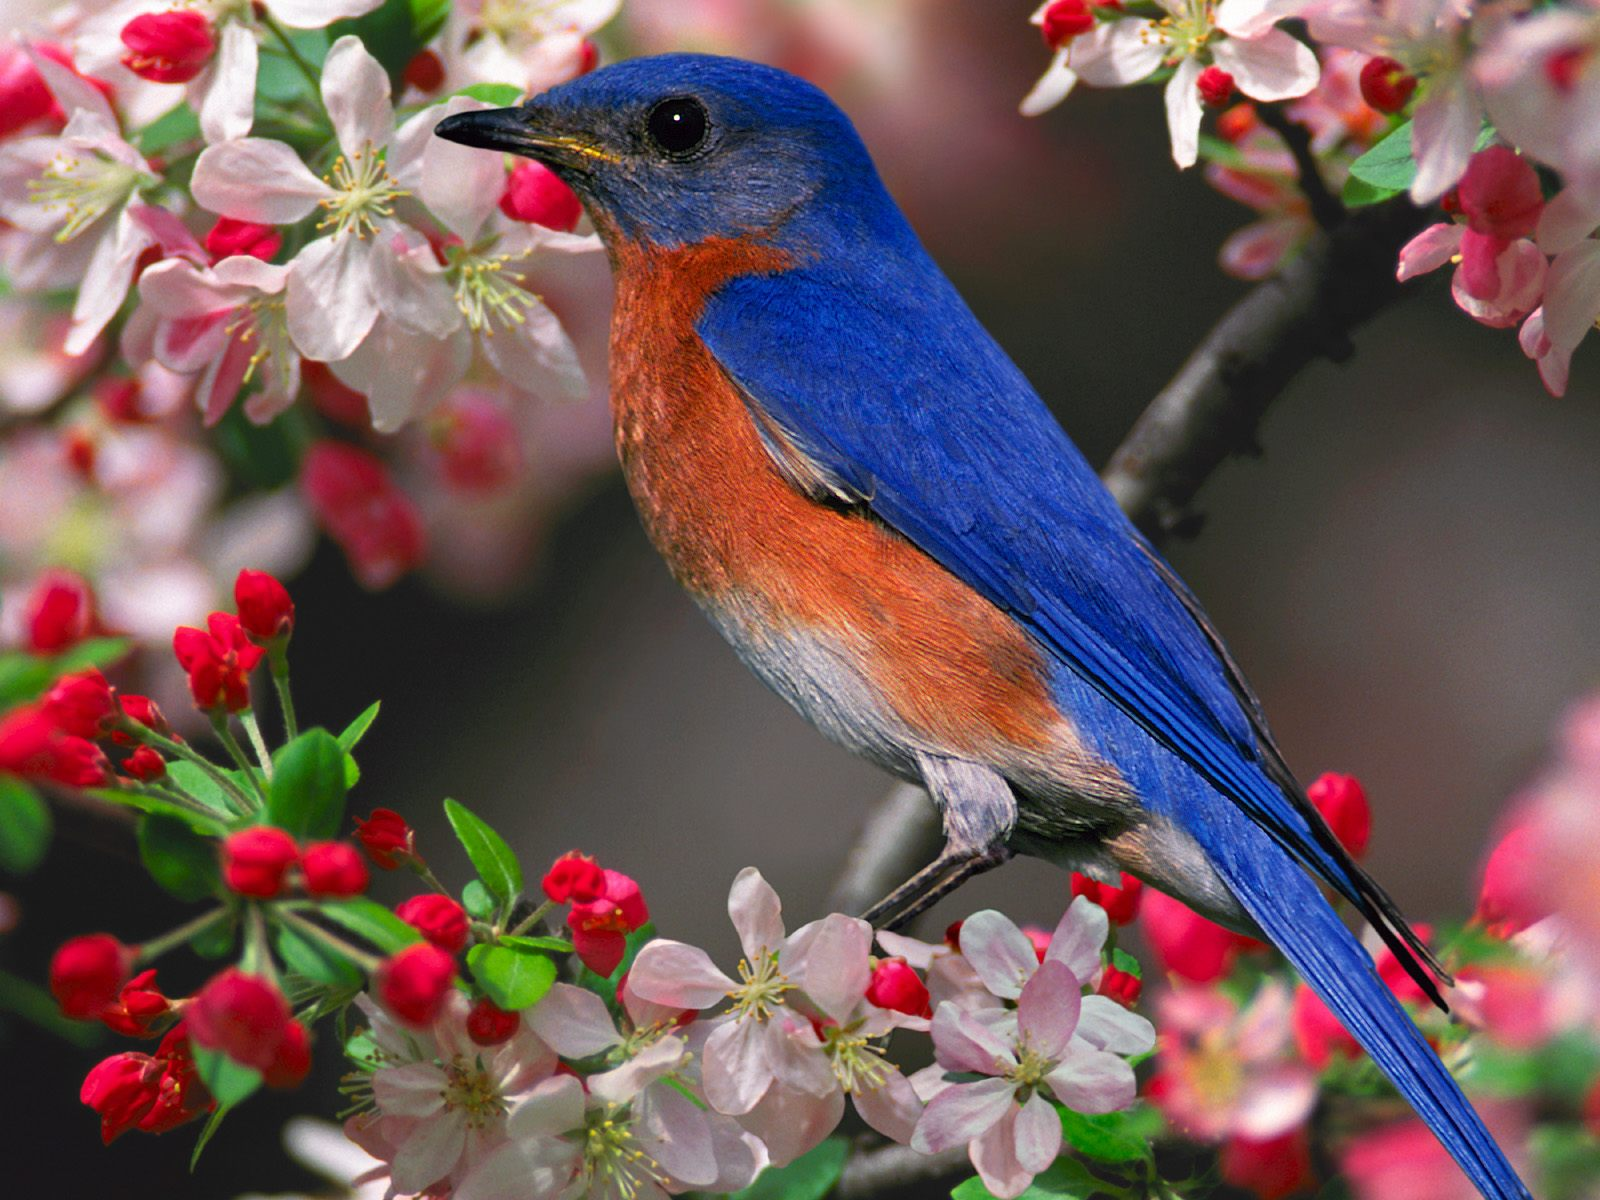 blue bird wallpapers - Picture 0f the day (18th Feb 2012)